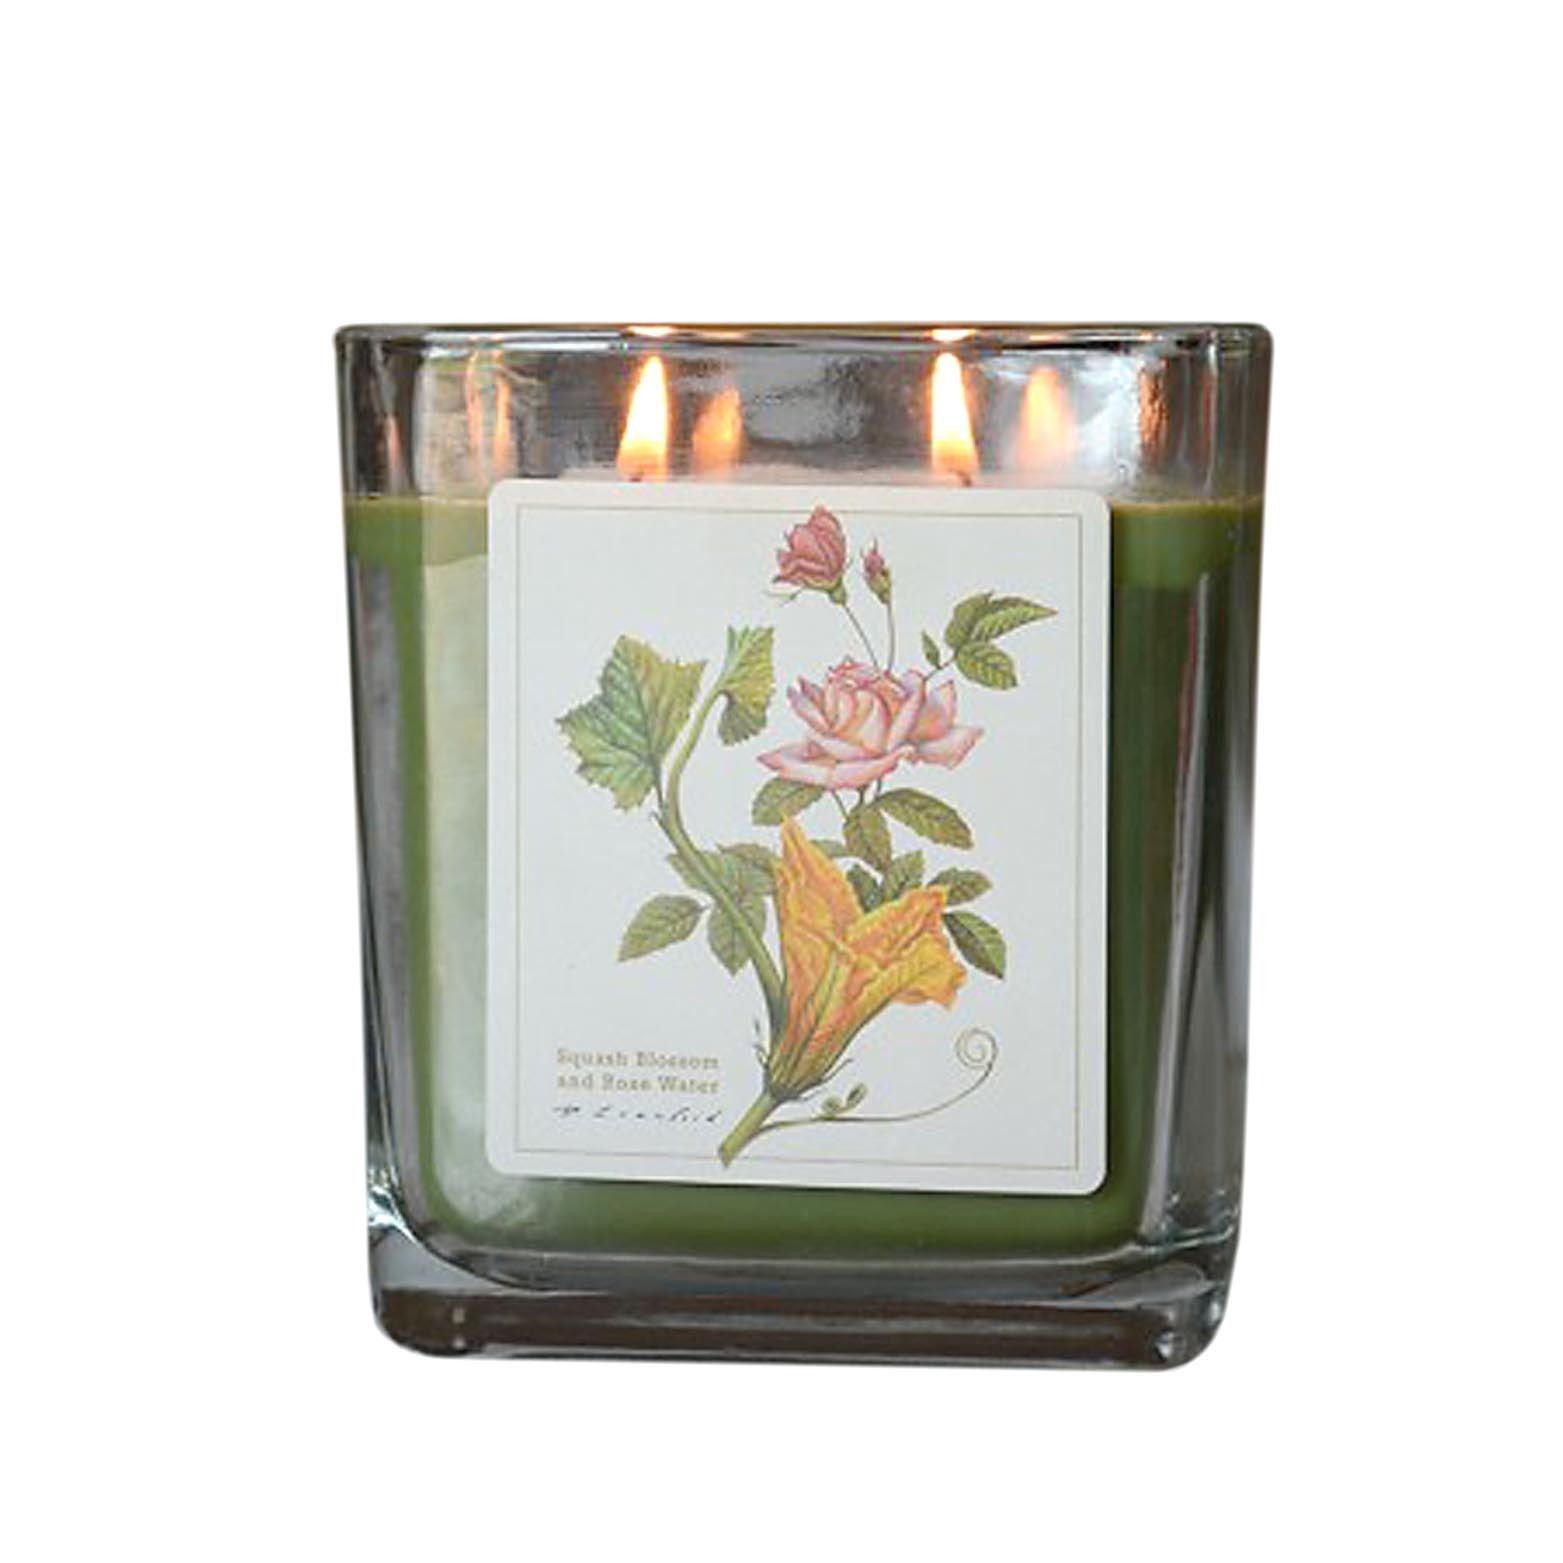 Squash Blossom w Rose Water Hand Poured Verdure Gift Boxed Soy Candle USA made